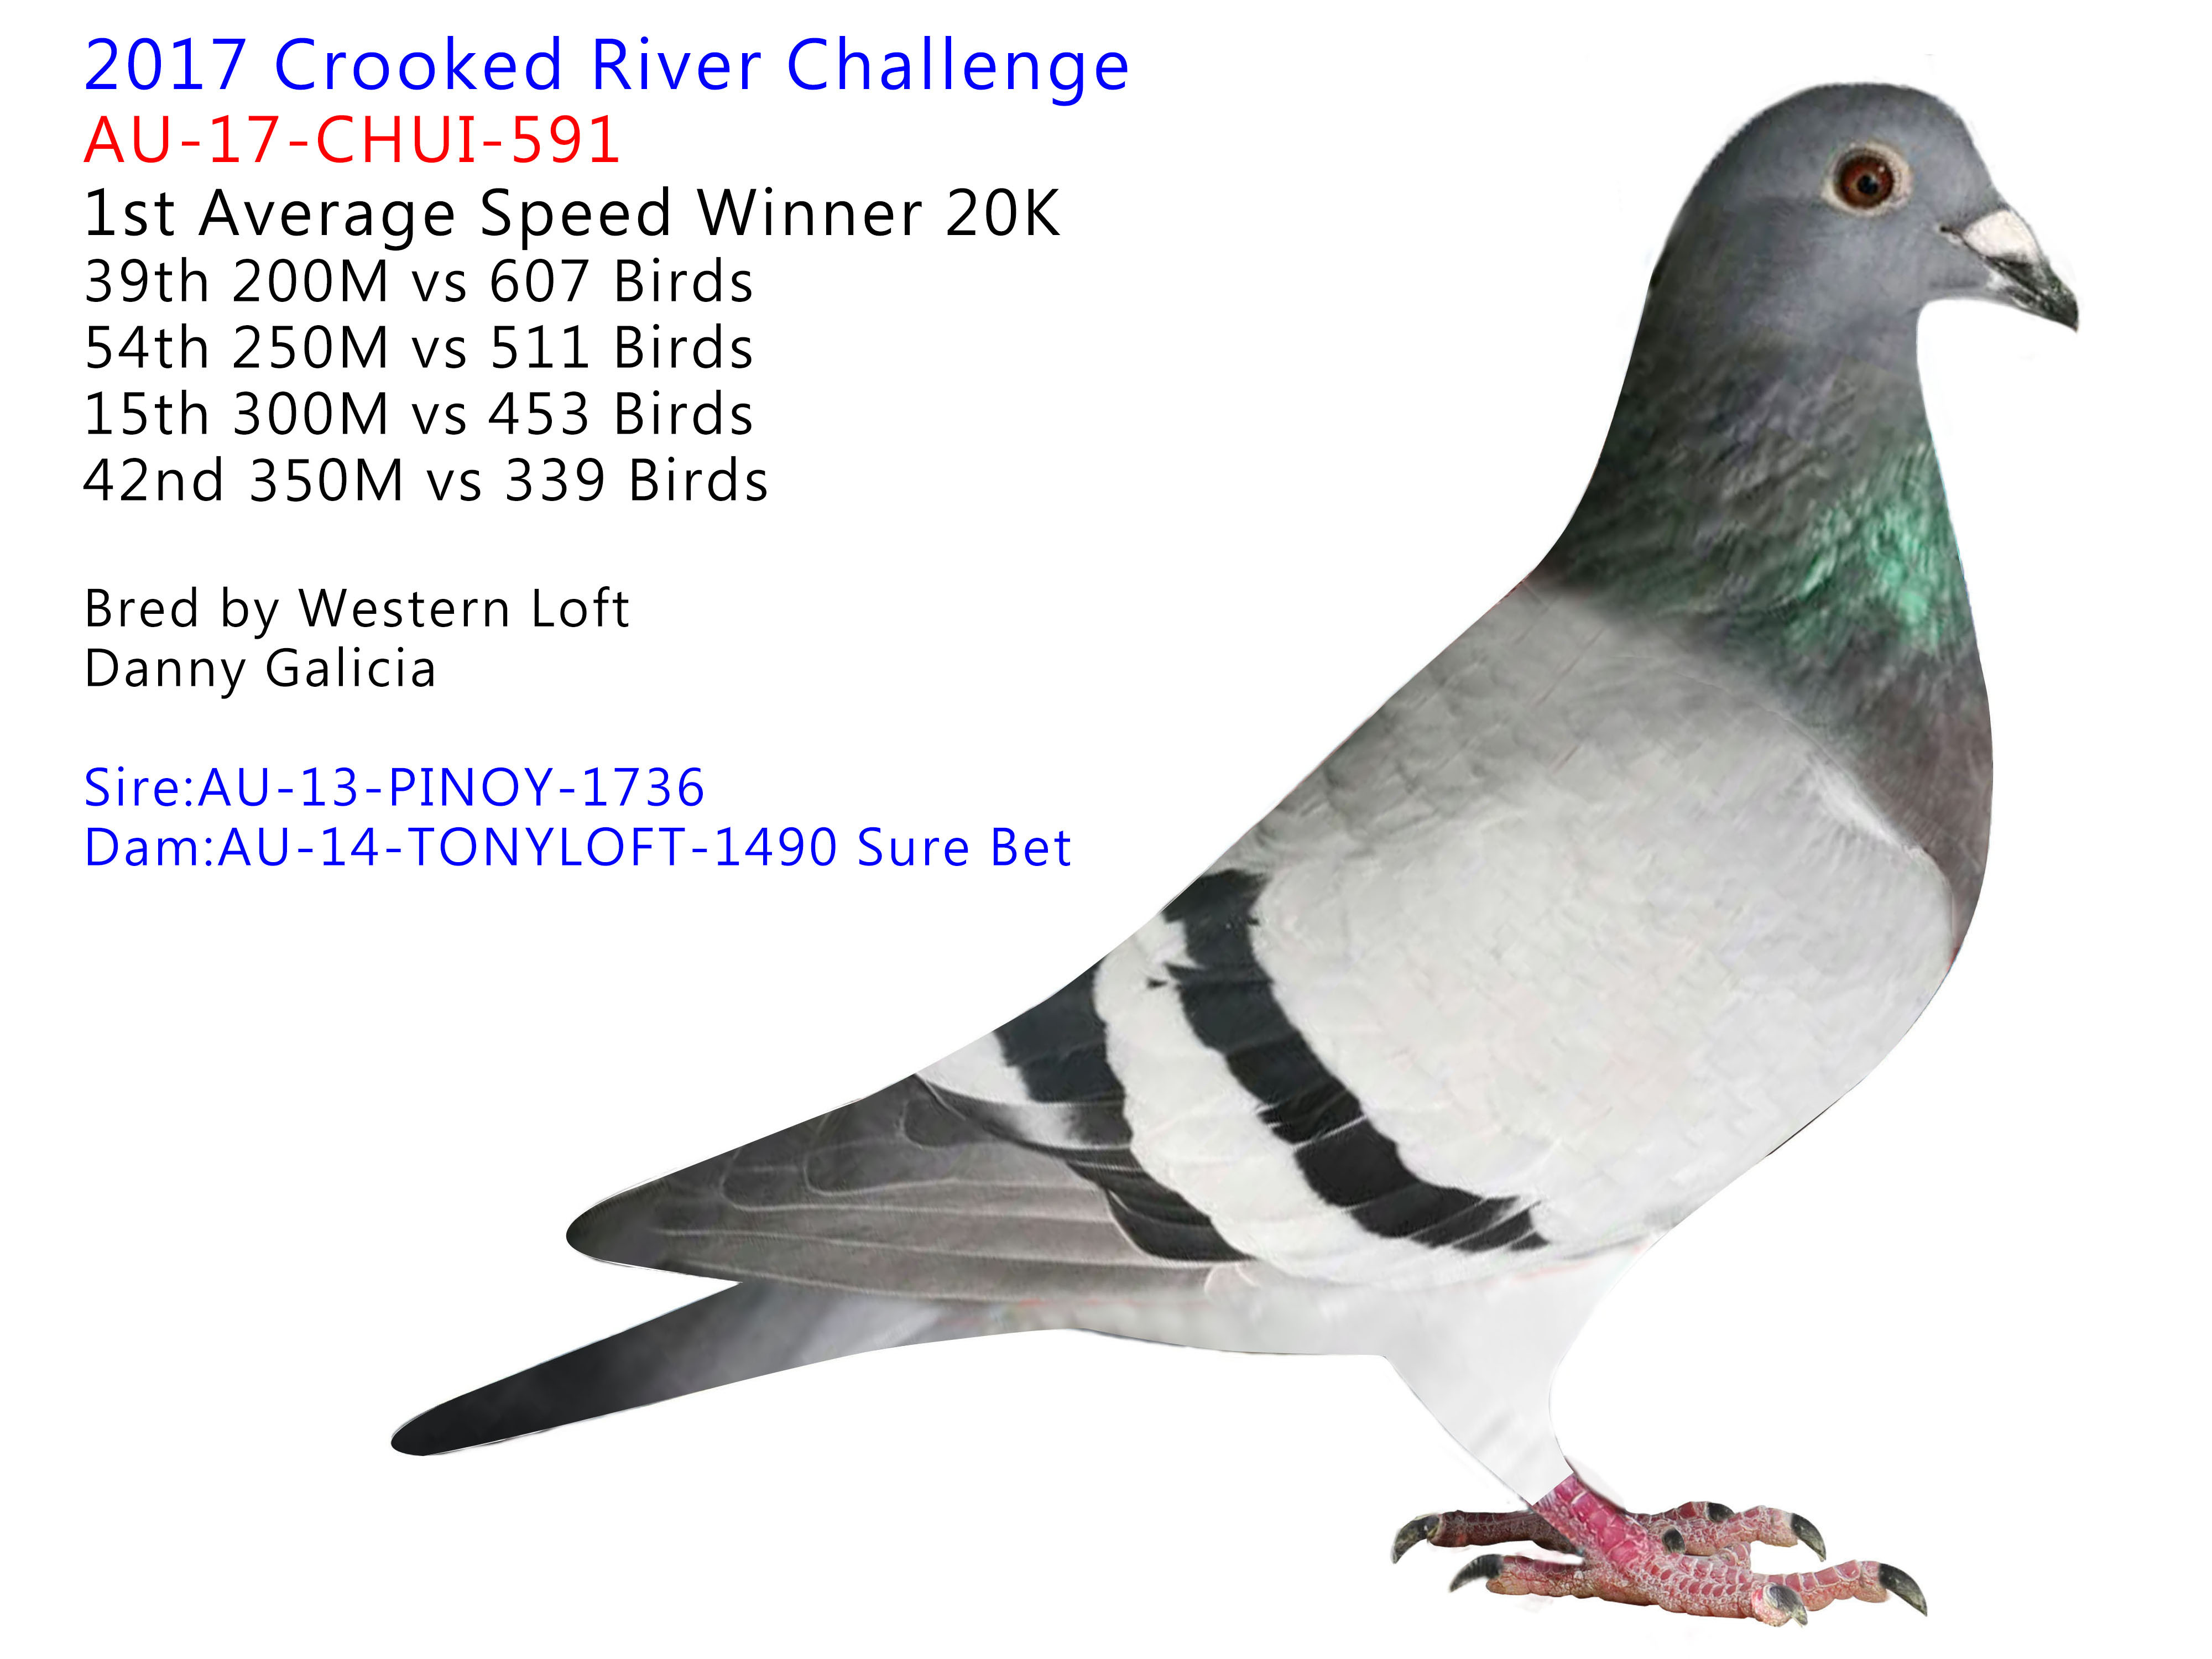 2017 Crooked River Challenge 1st Average Speed